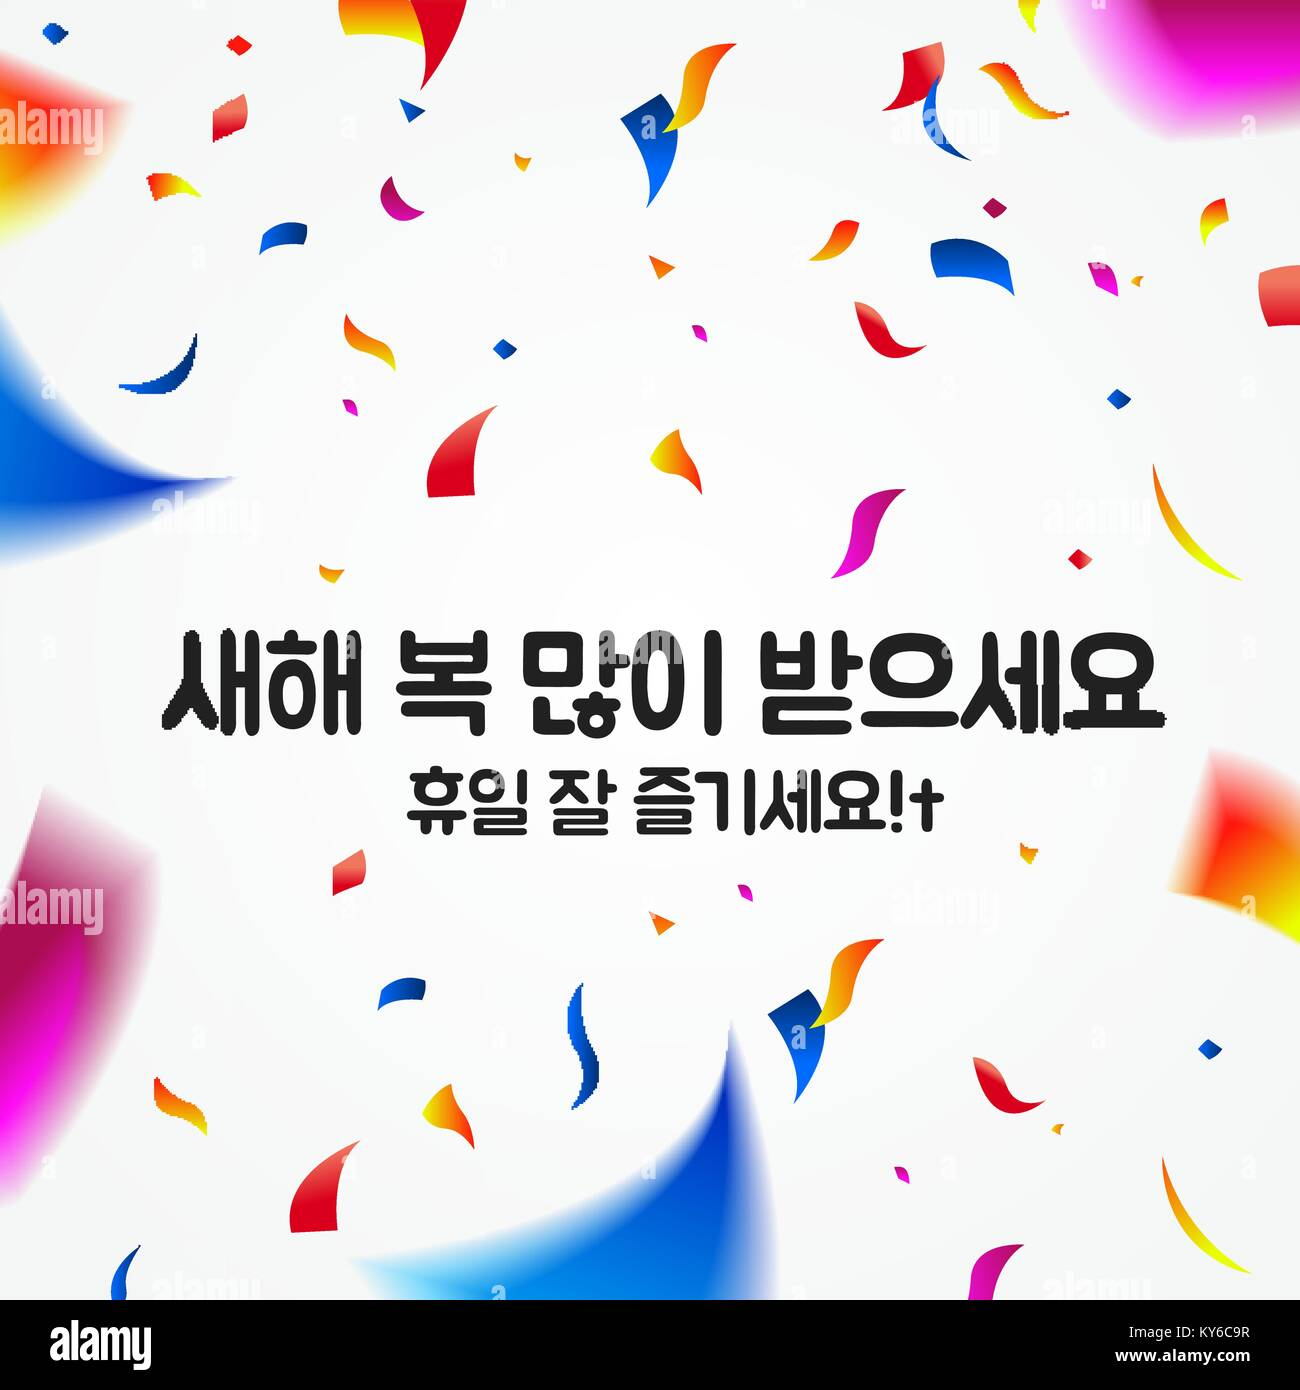 happy korean new year greeting card colorful confetti in holiday party celebration with traditional calligraphy message for good luck and happiness